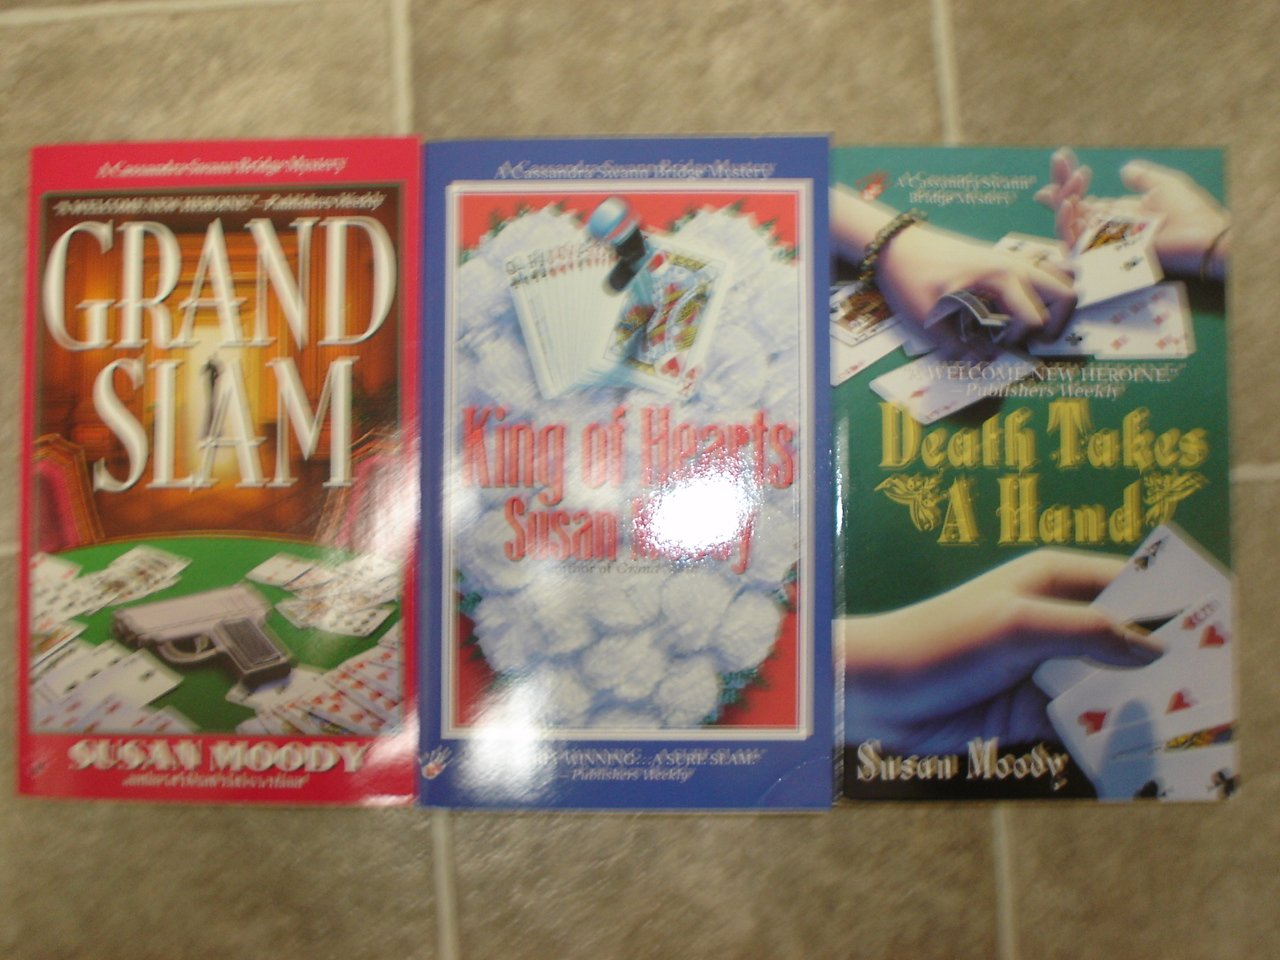 Susan Moody lot of 3 pb mystery novels books cozy Cassandra Swan Bridge Berkley Prime Crime